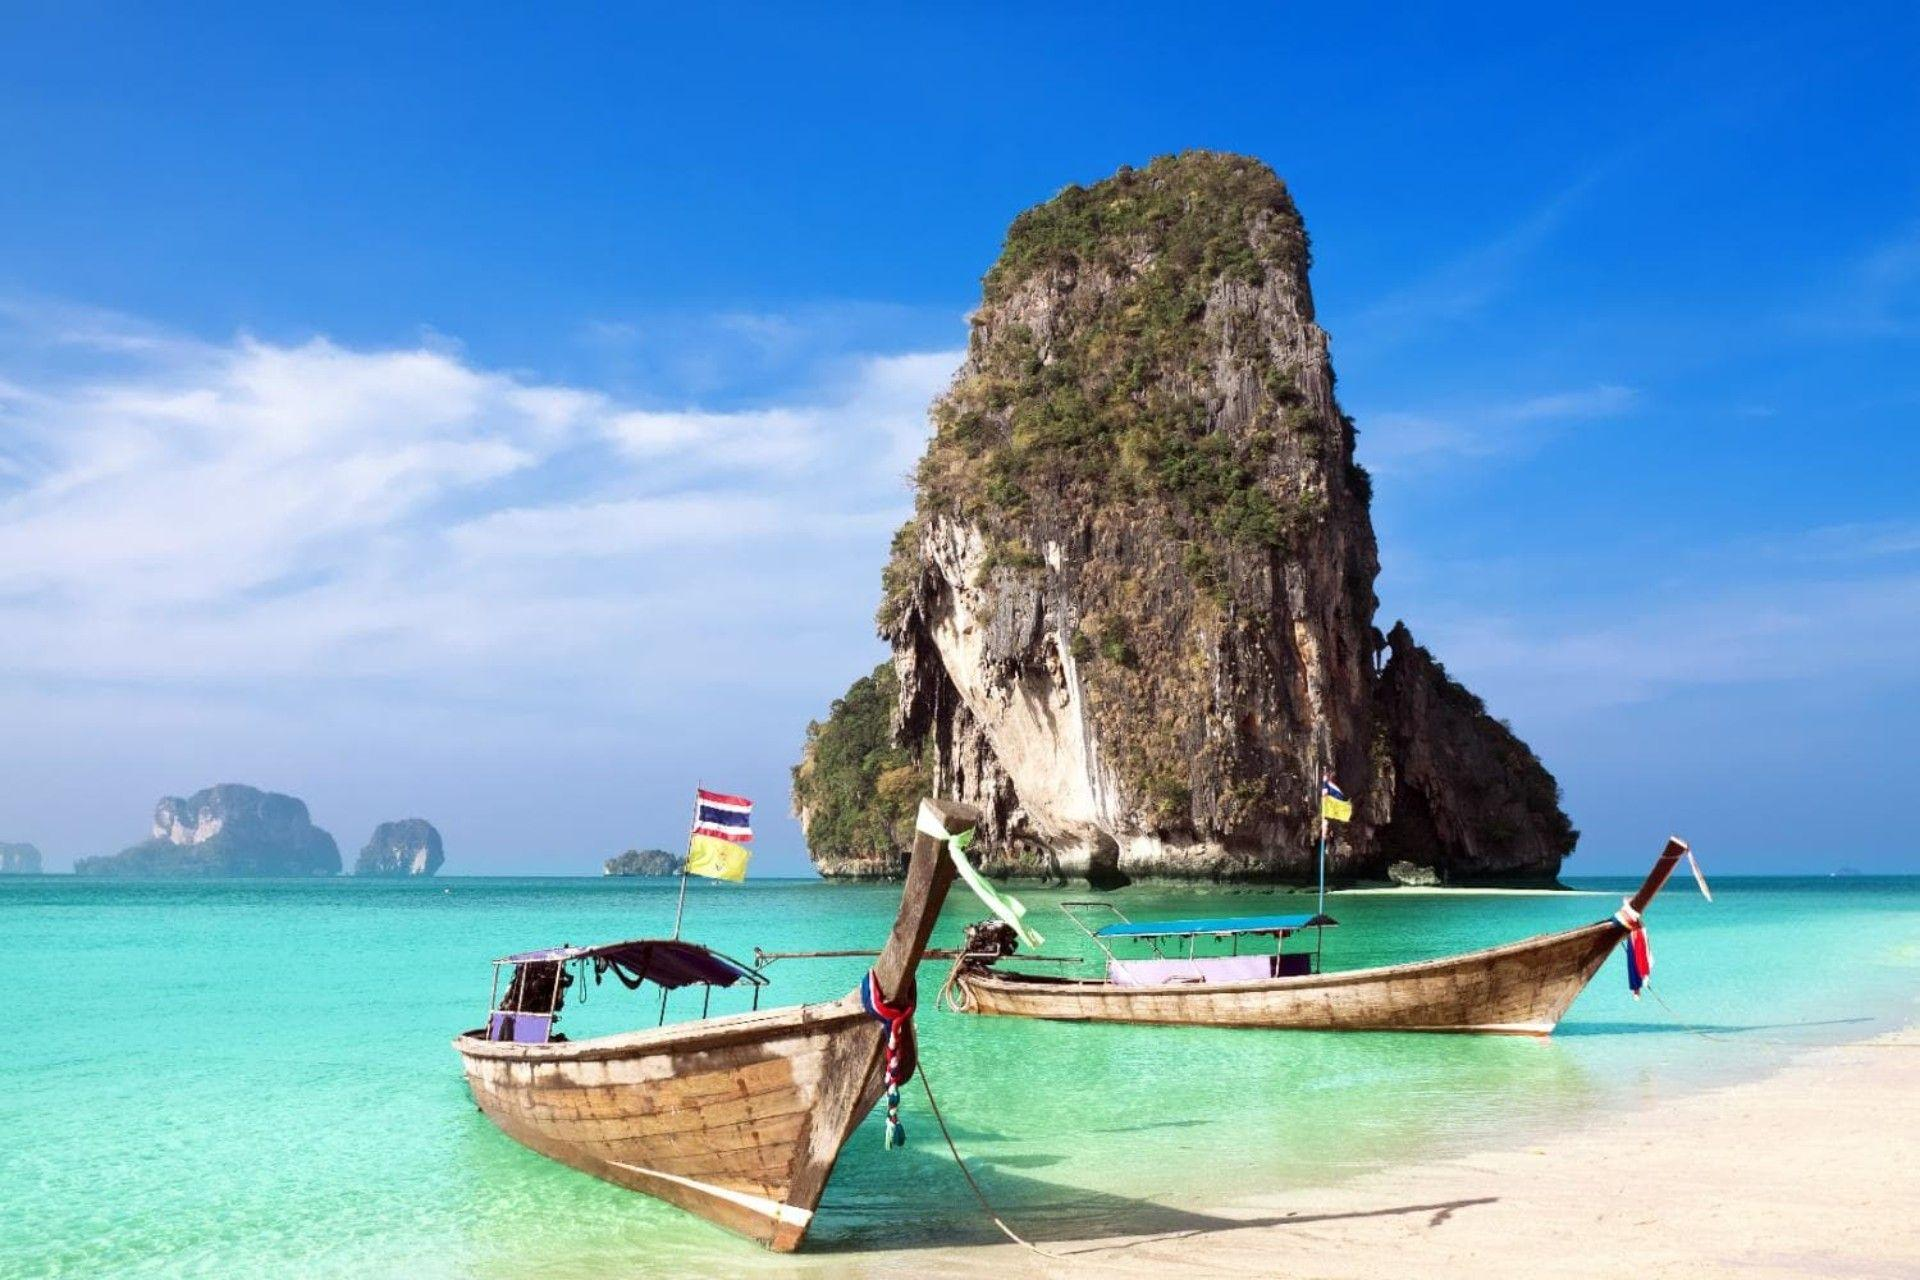 Thailand Beaches HD Wallpaper | HD Wallpapers